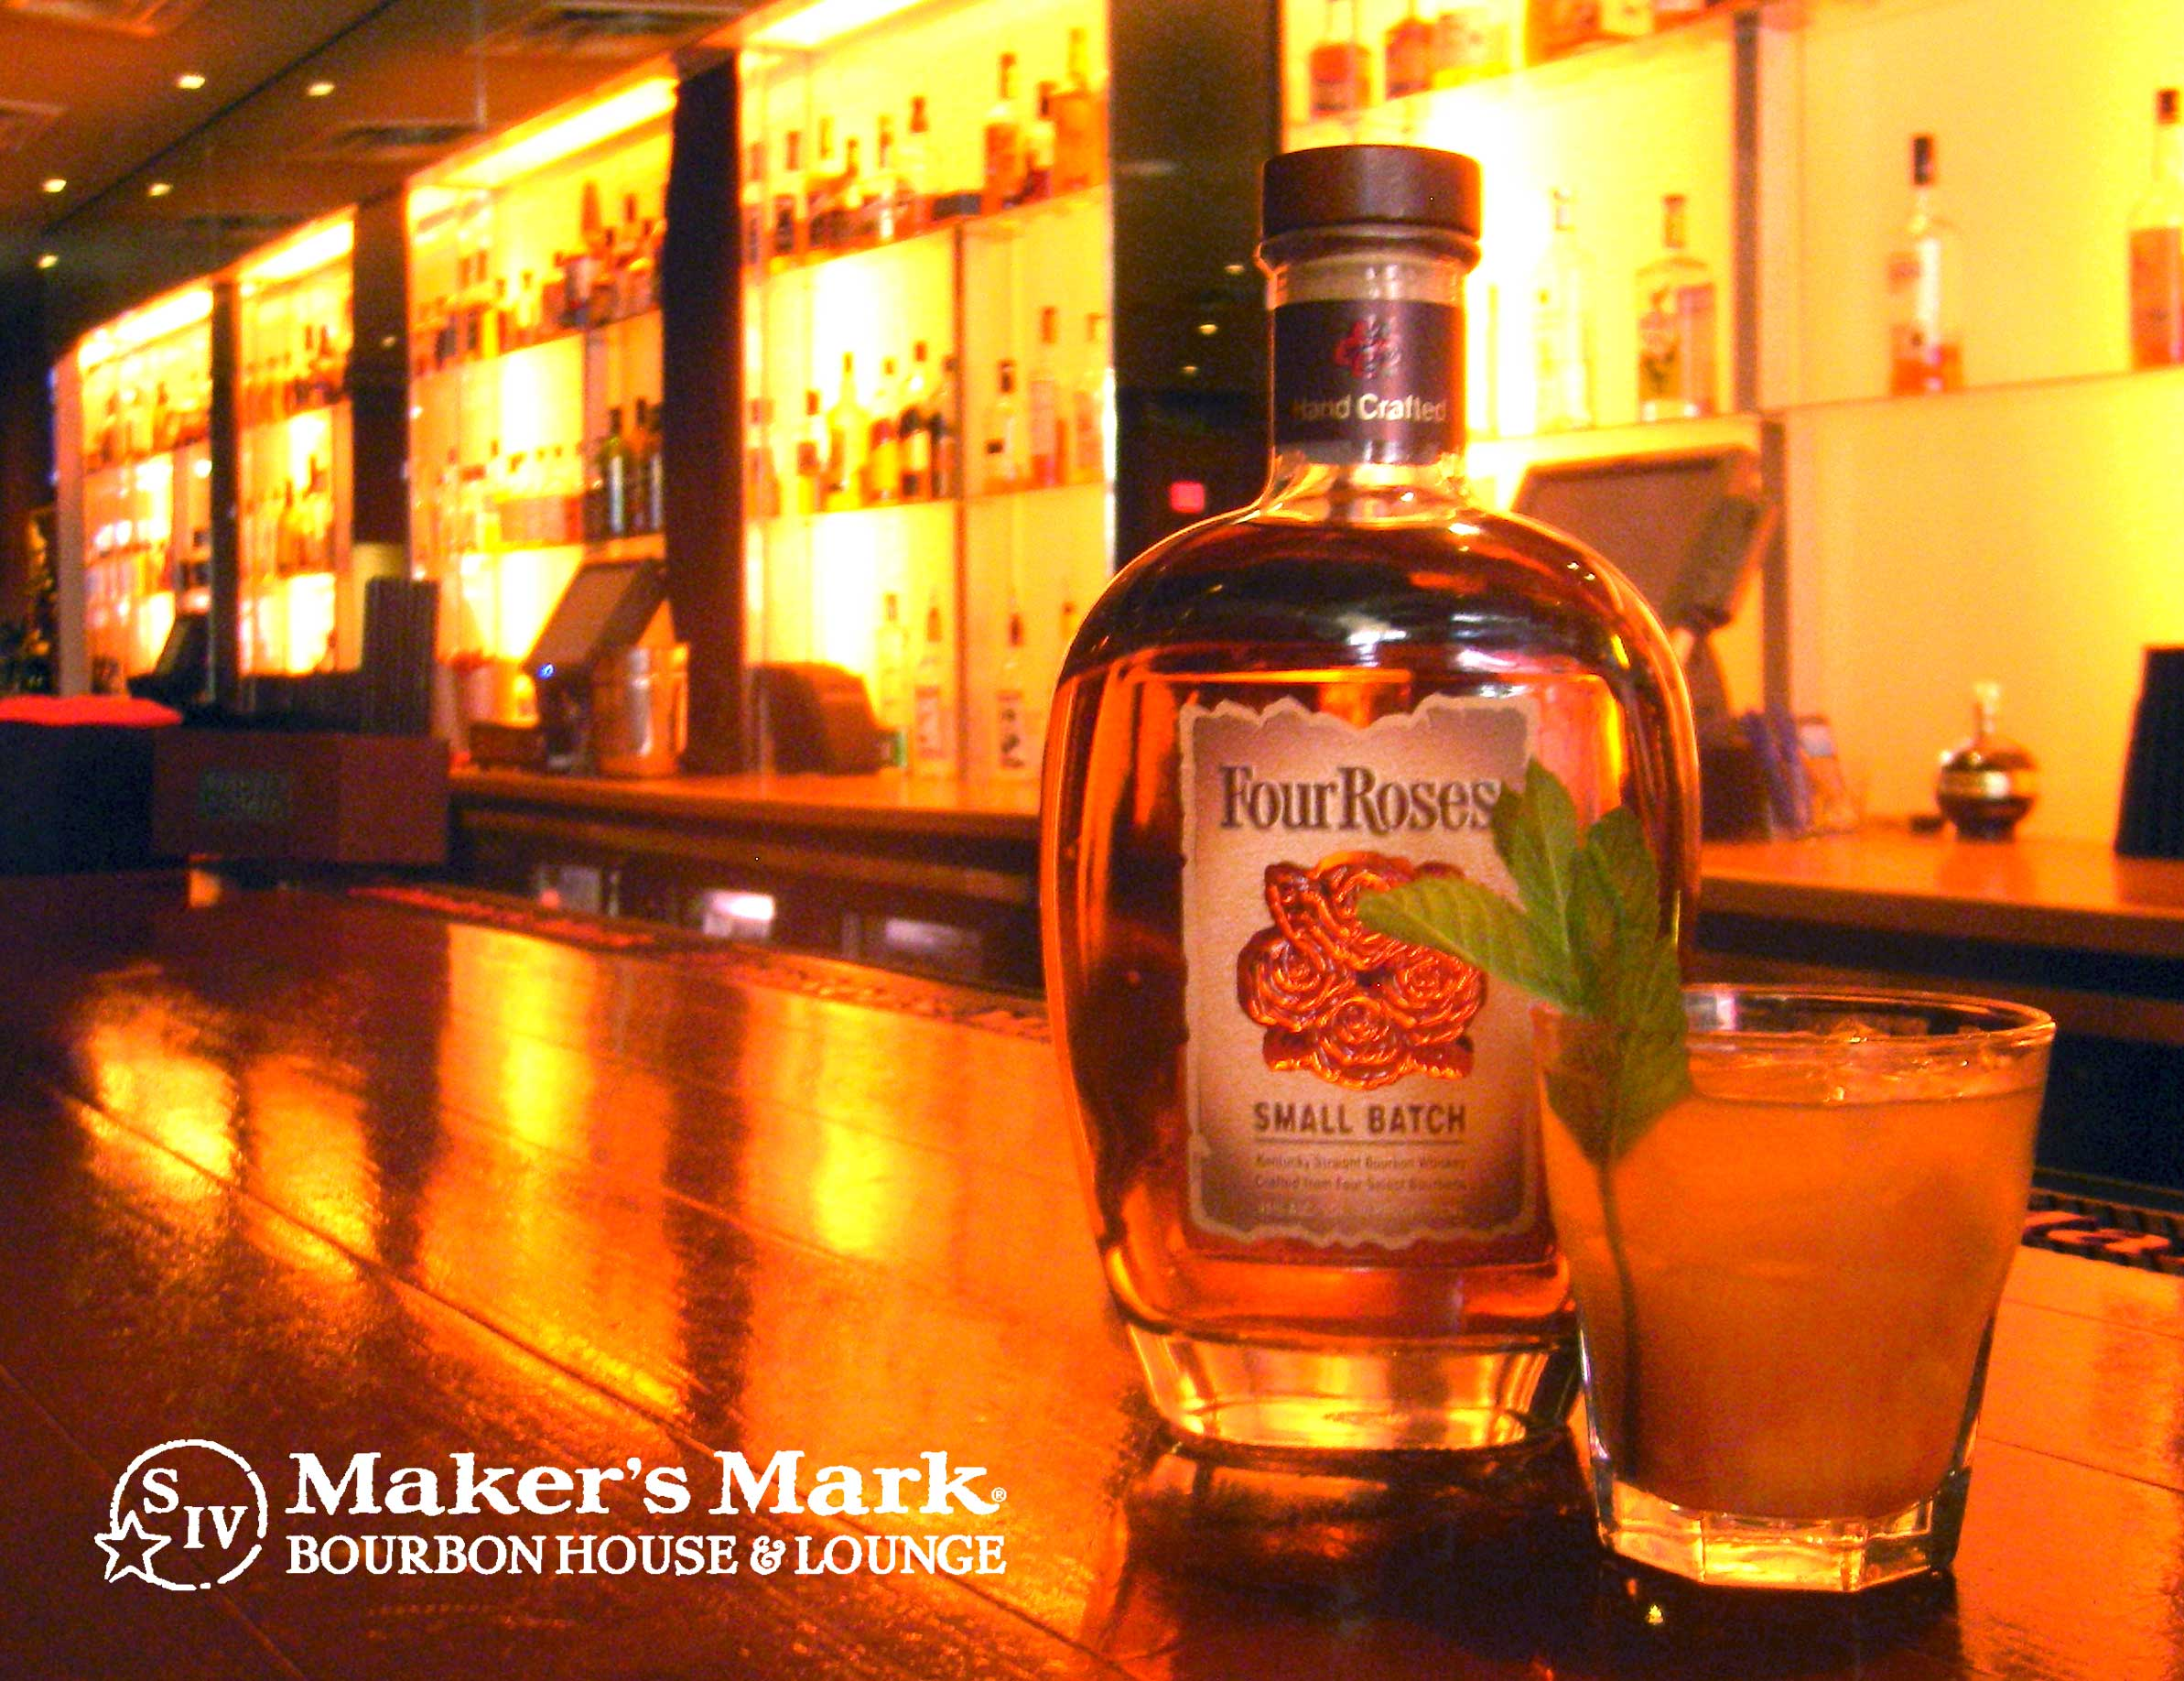 Maker's Mark Bourbon House & Lounge - Bars/Nightife - 446 South 4th Street, Louisville, KY, United States